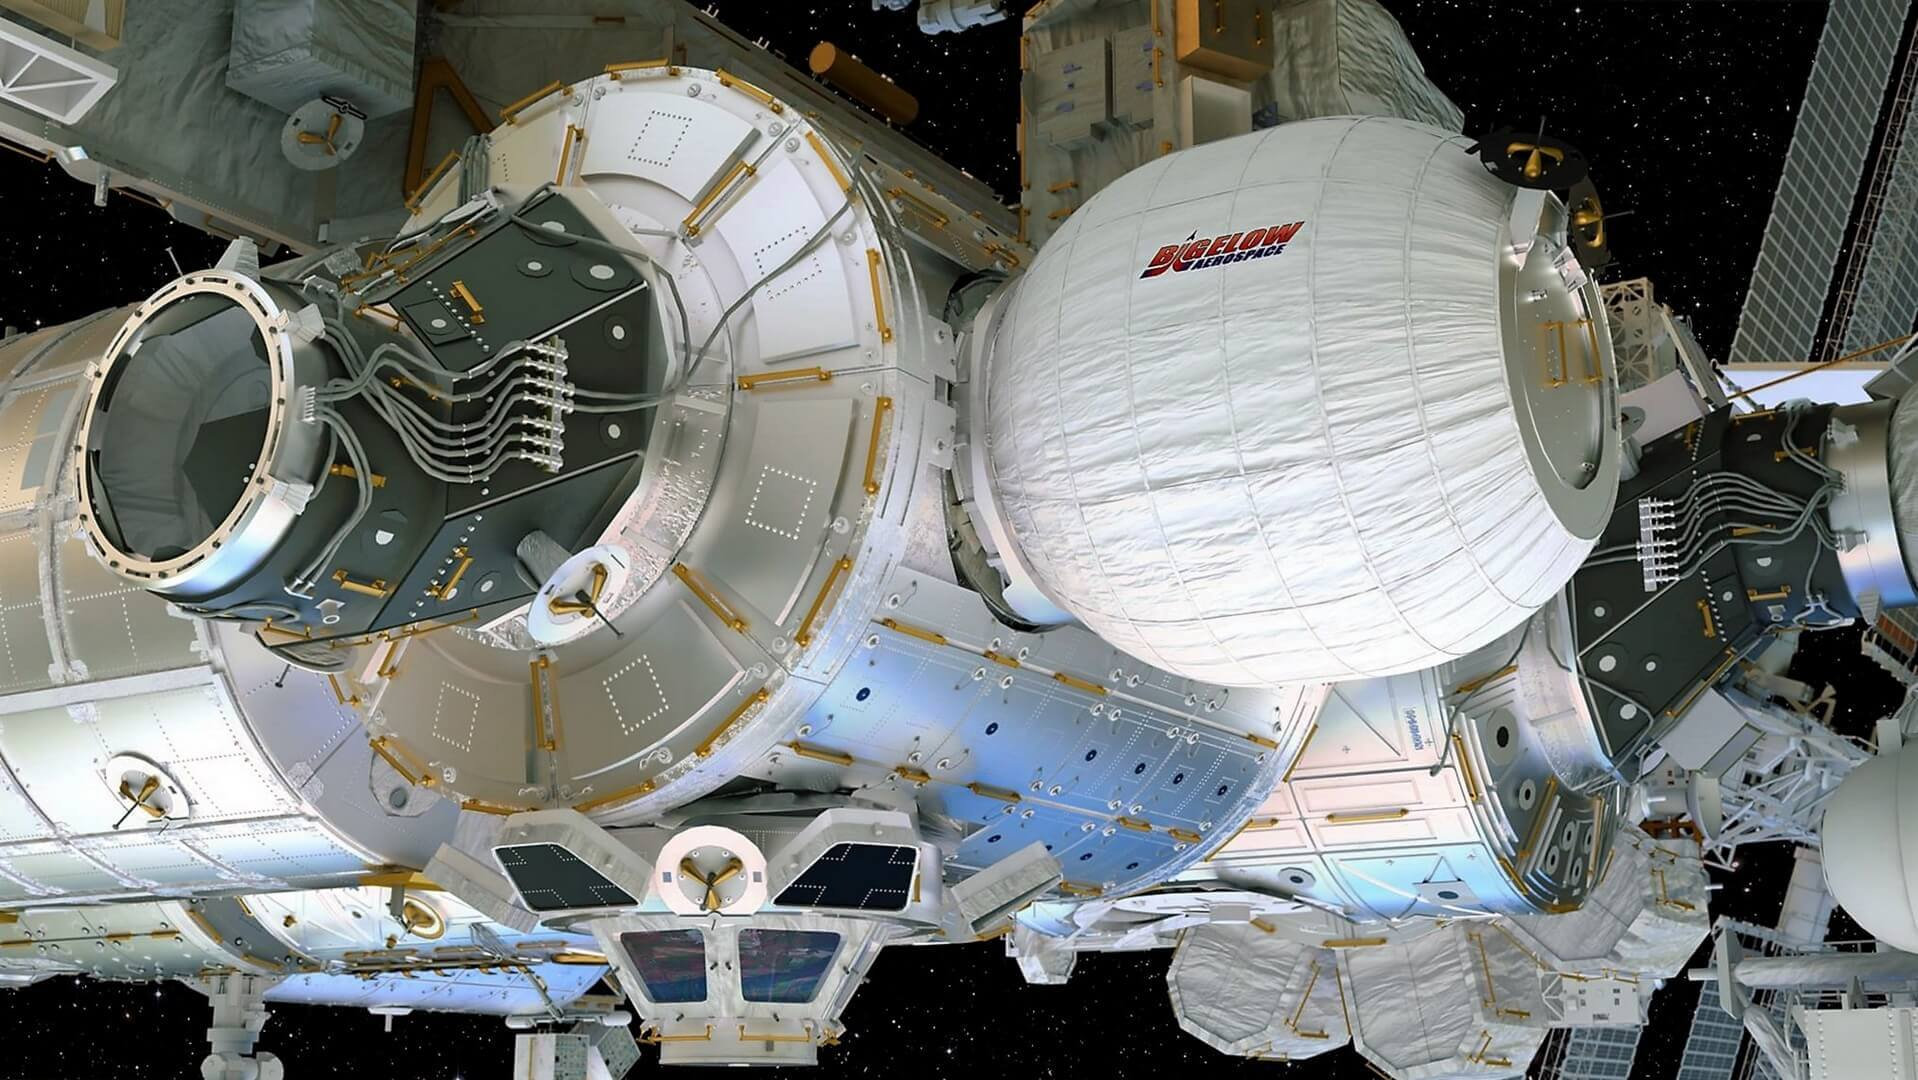 NASA is 3D Printing Radiation Shields for Expandable Habitats | All3DP